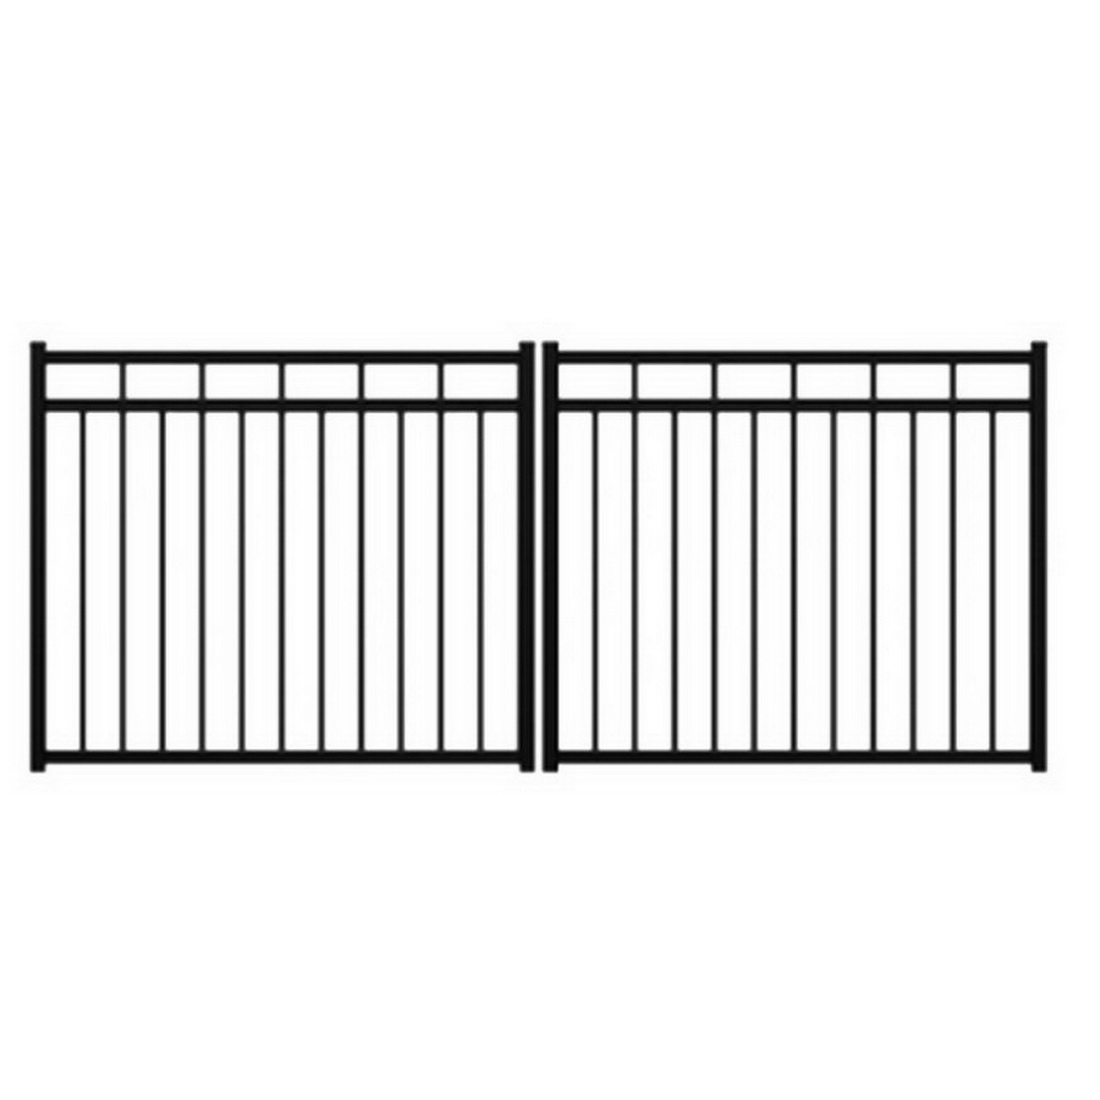 Mansion 1800H Driveway Gate 1800 x 3000mm Powder Coat Aluminum FAMDG1823